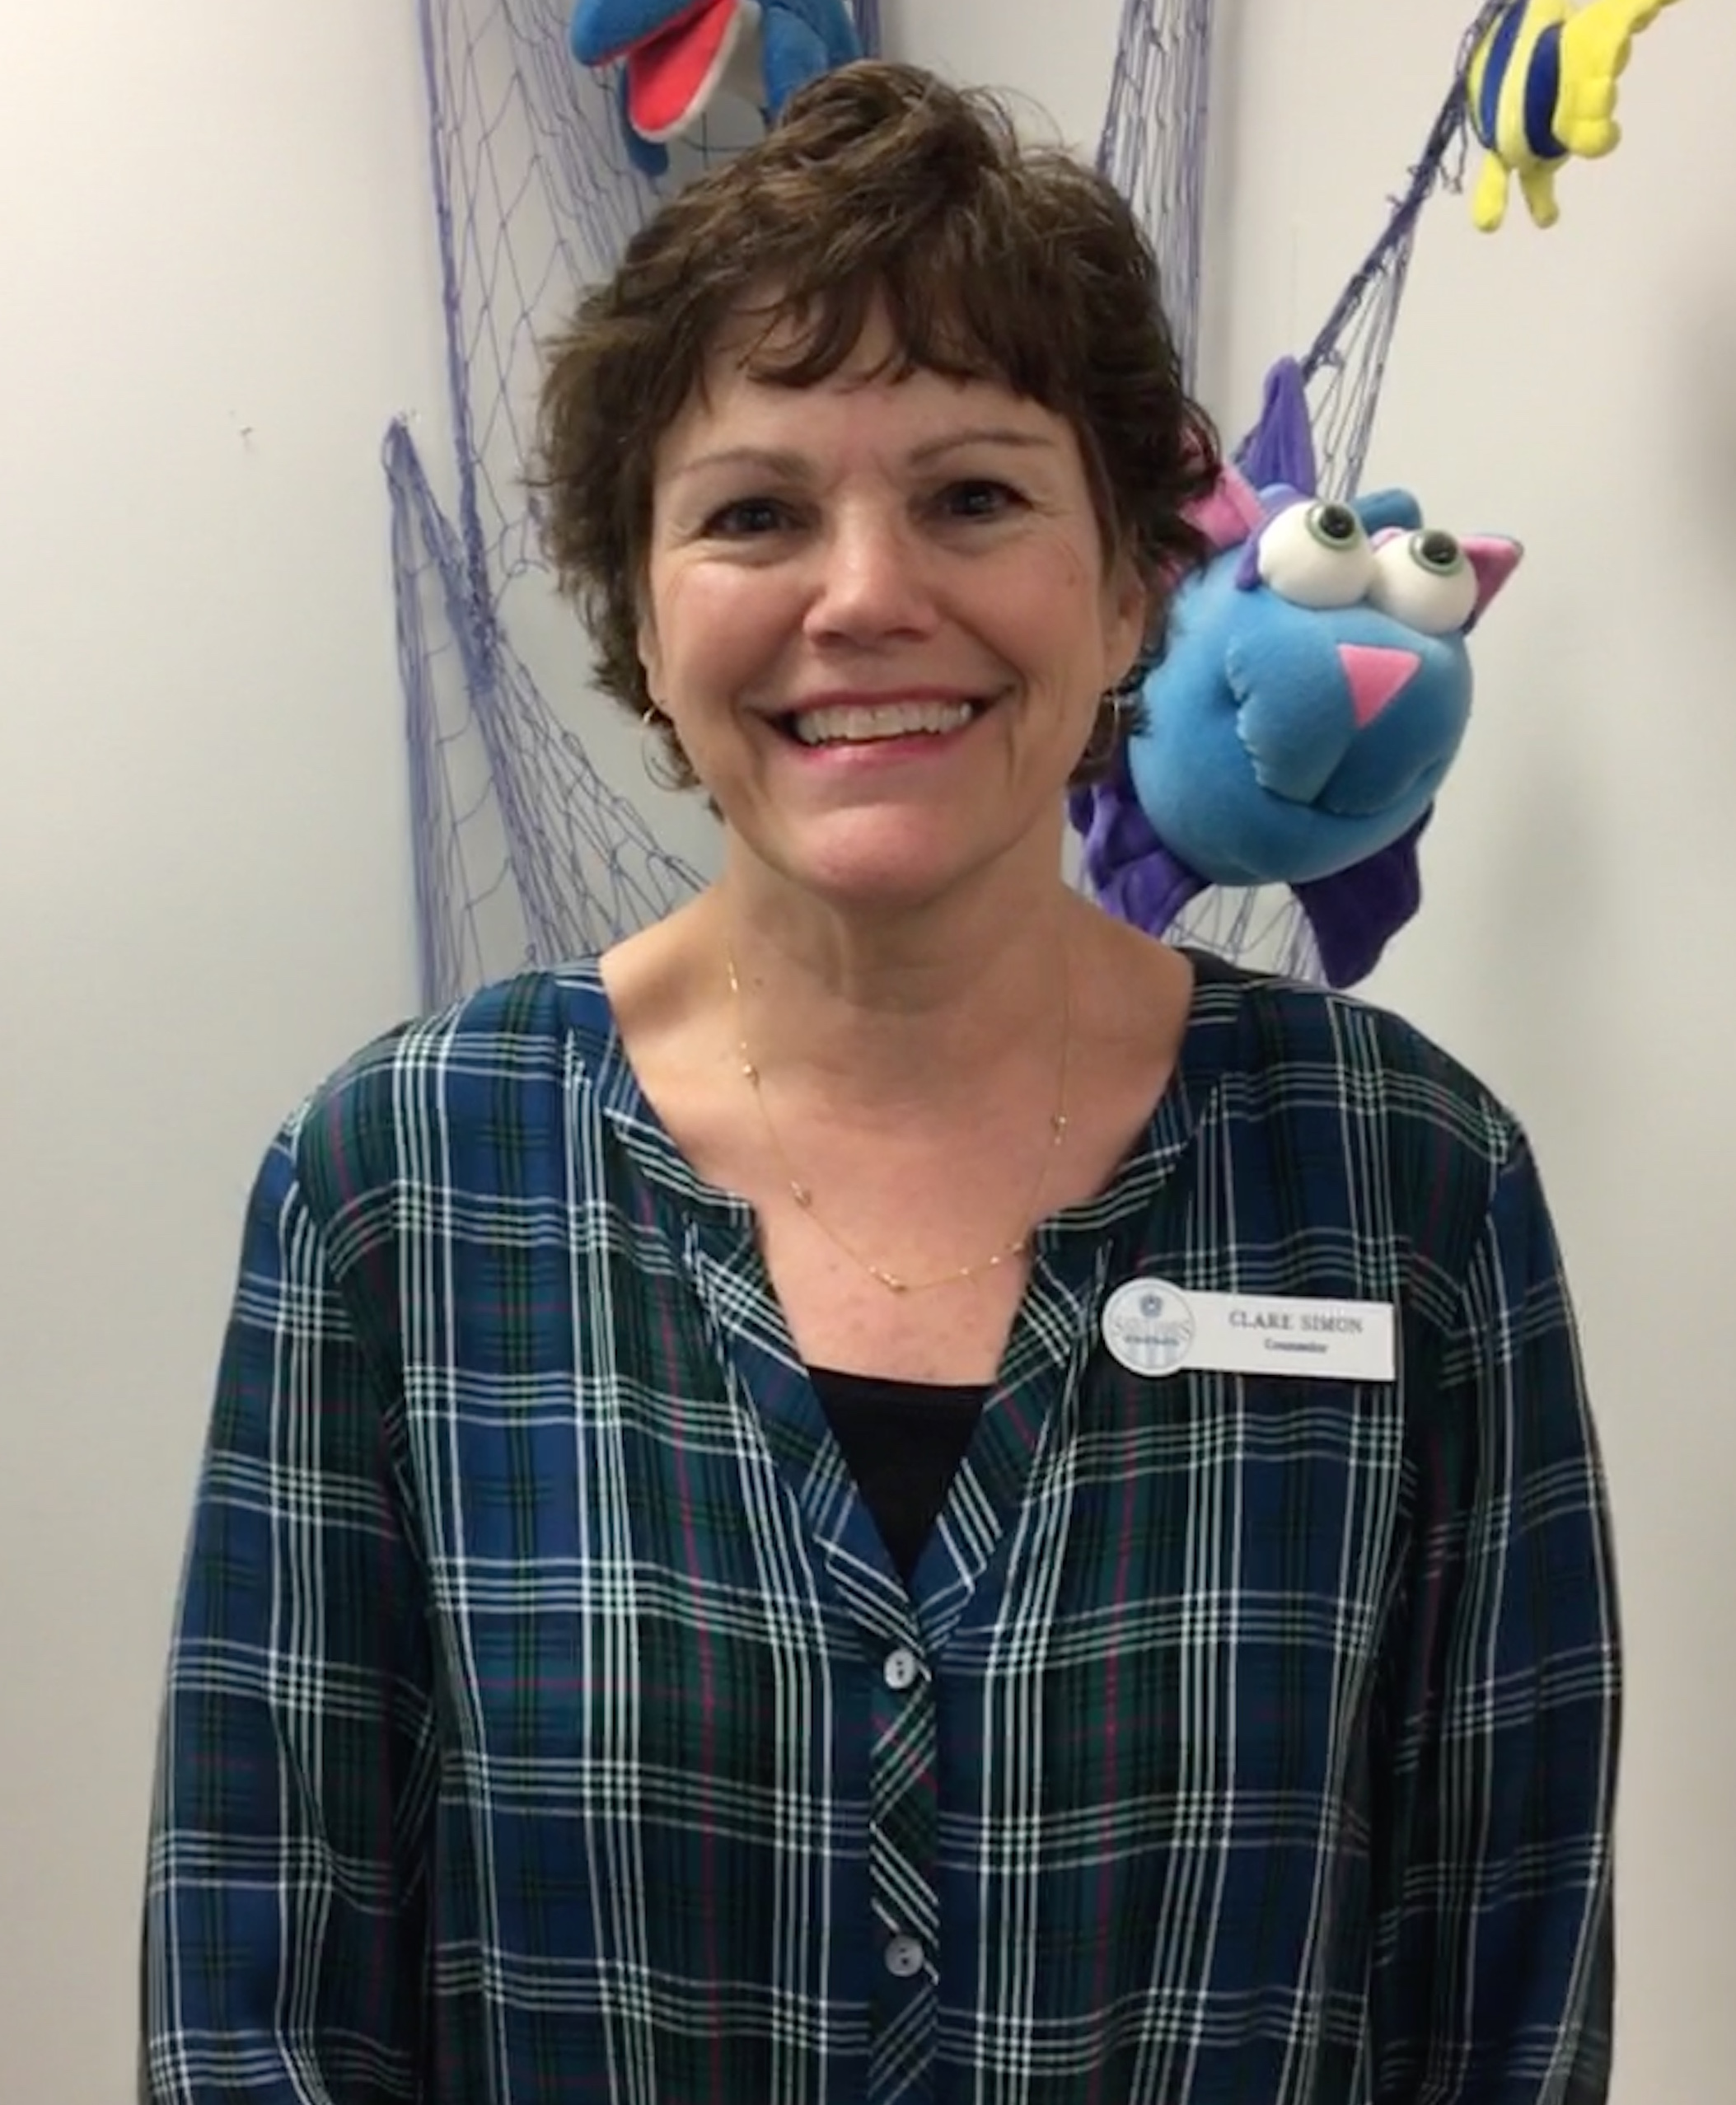 Clare Simon, Elementary School Counselor